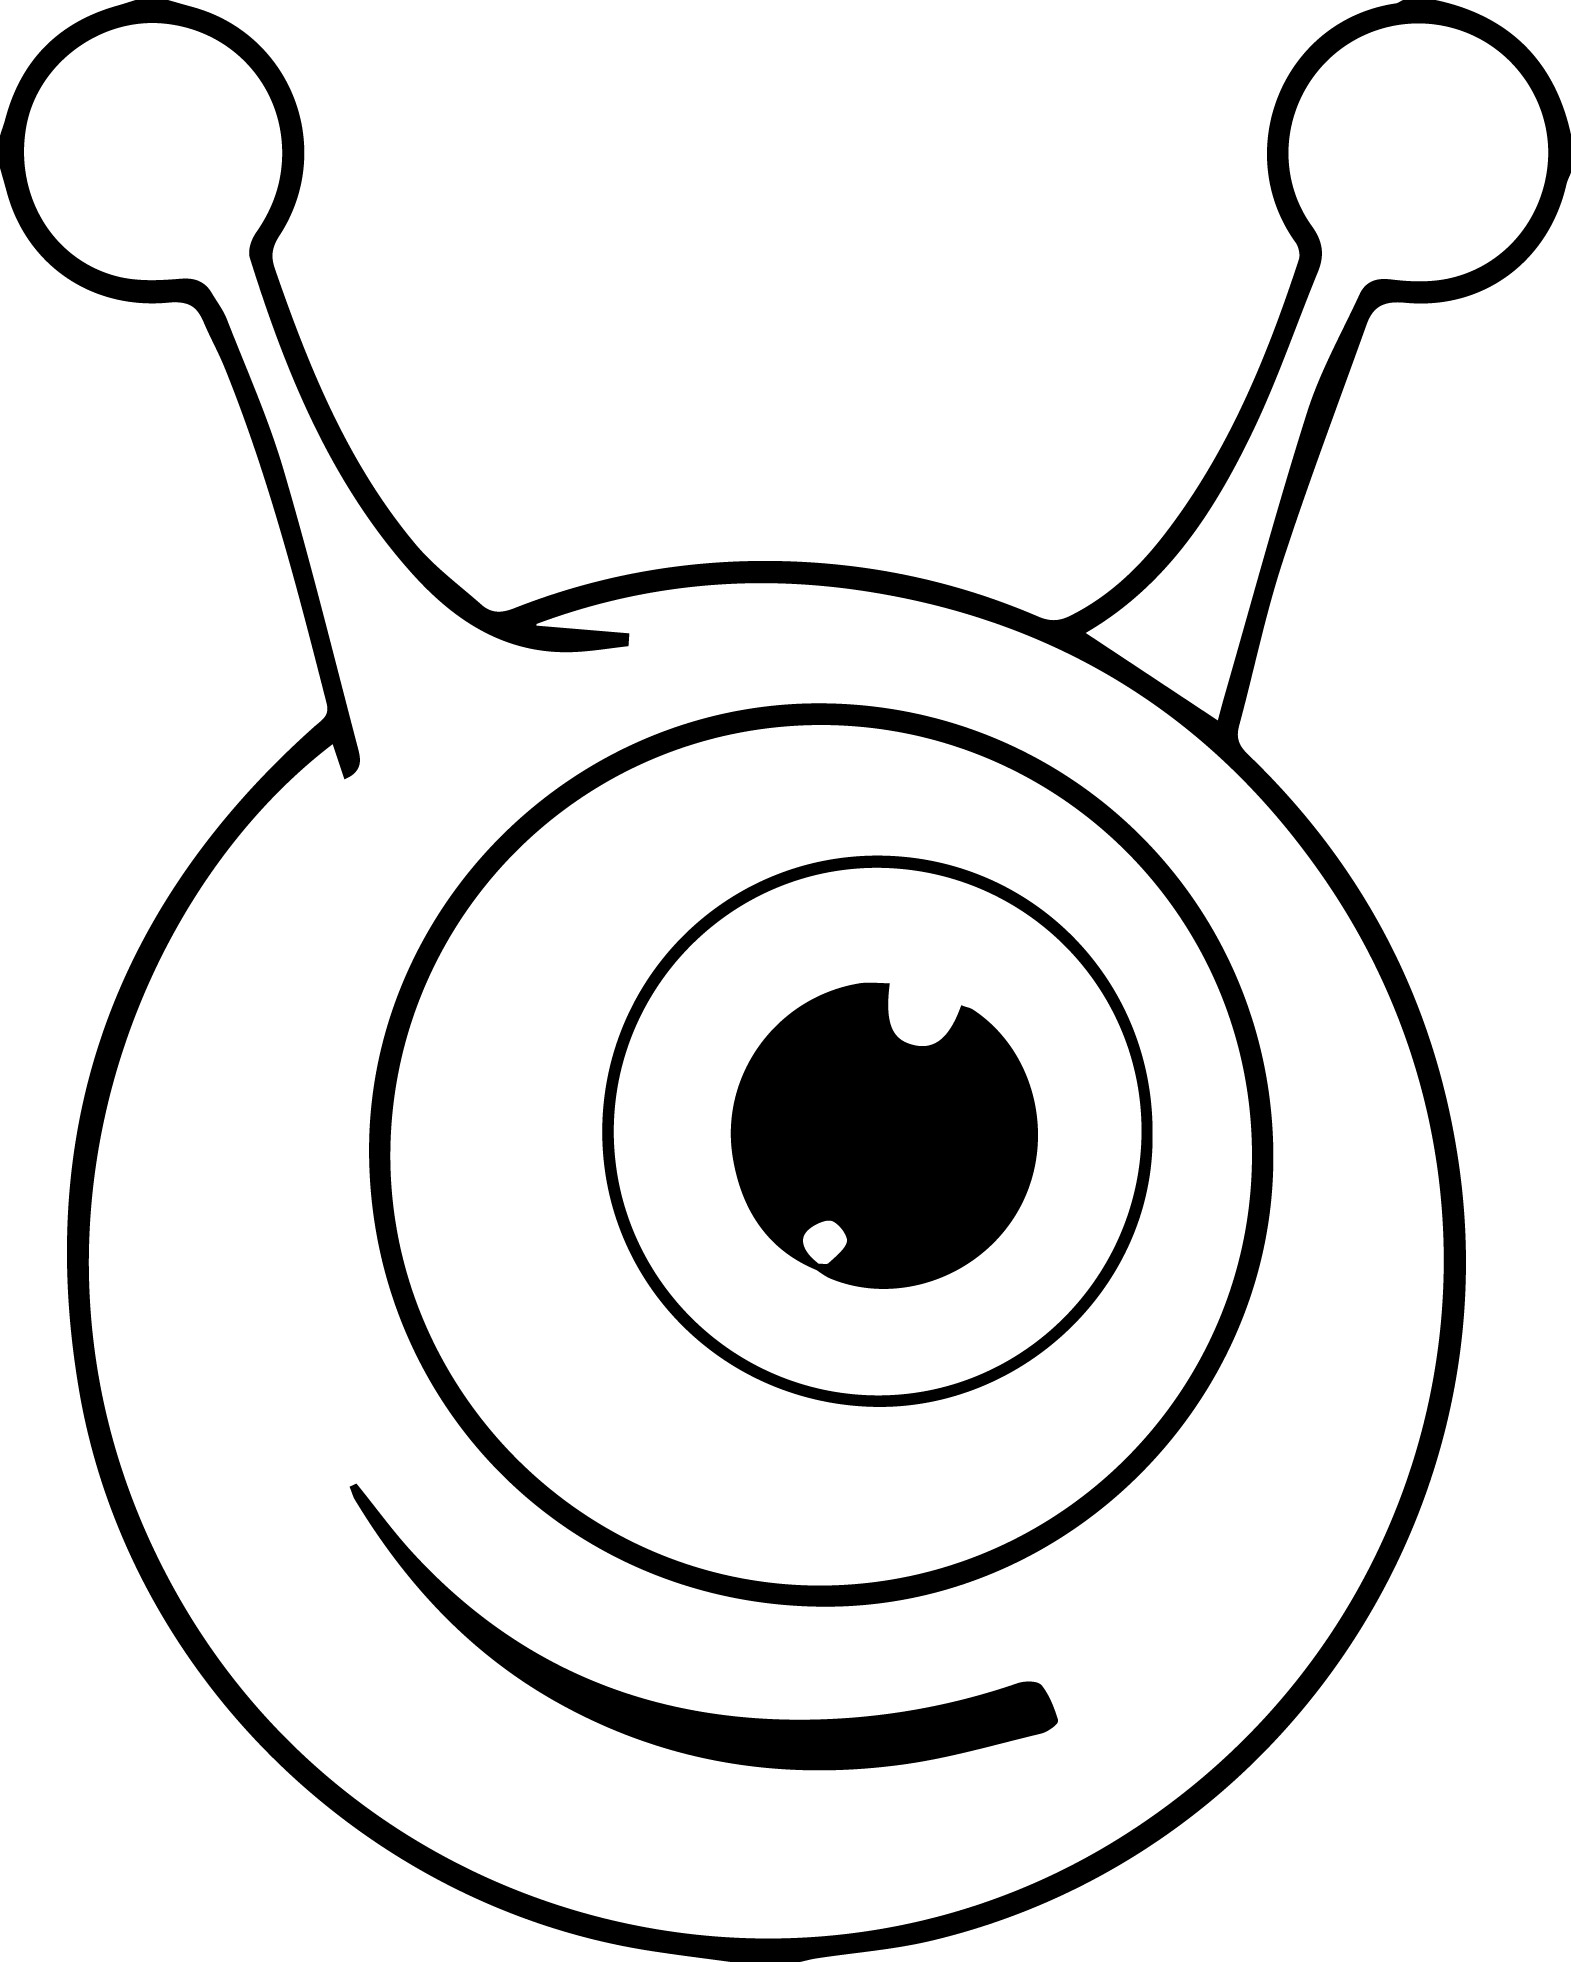 coloring images of eyes eye coloring page free download on clipartmag of eyes images coloring 1 1